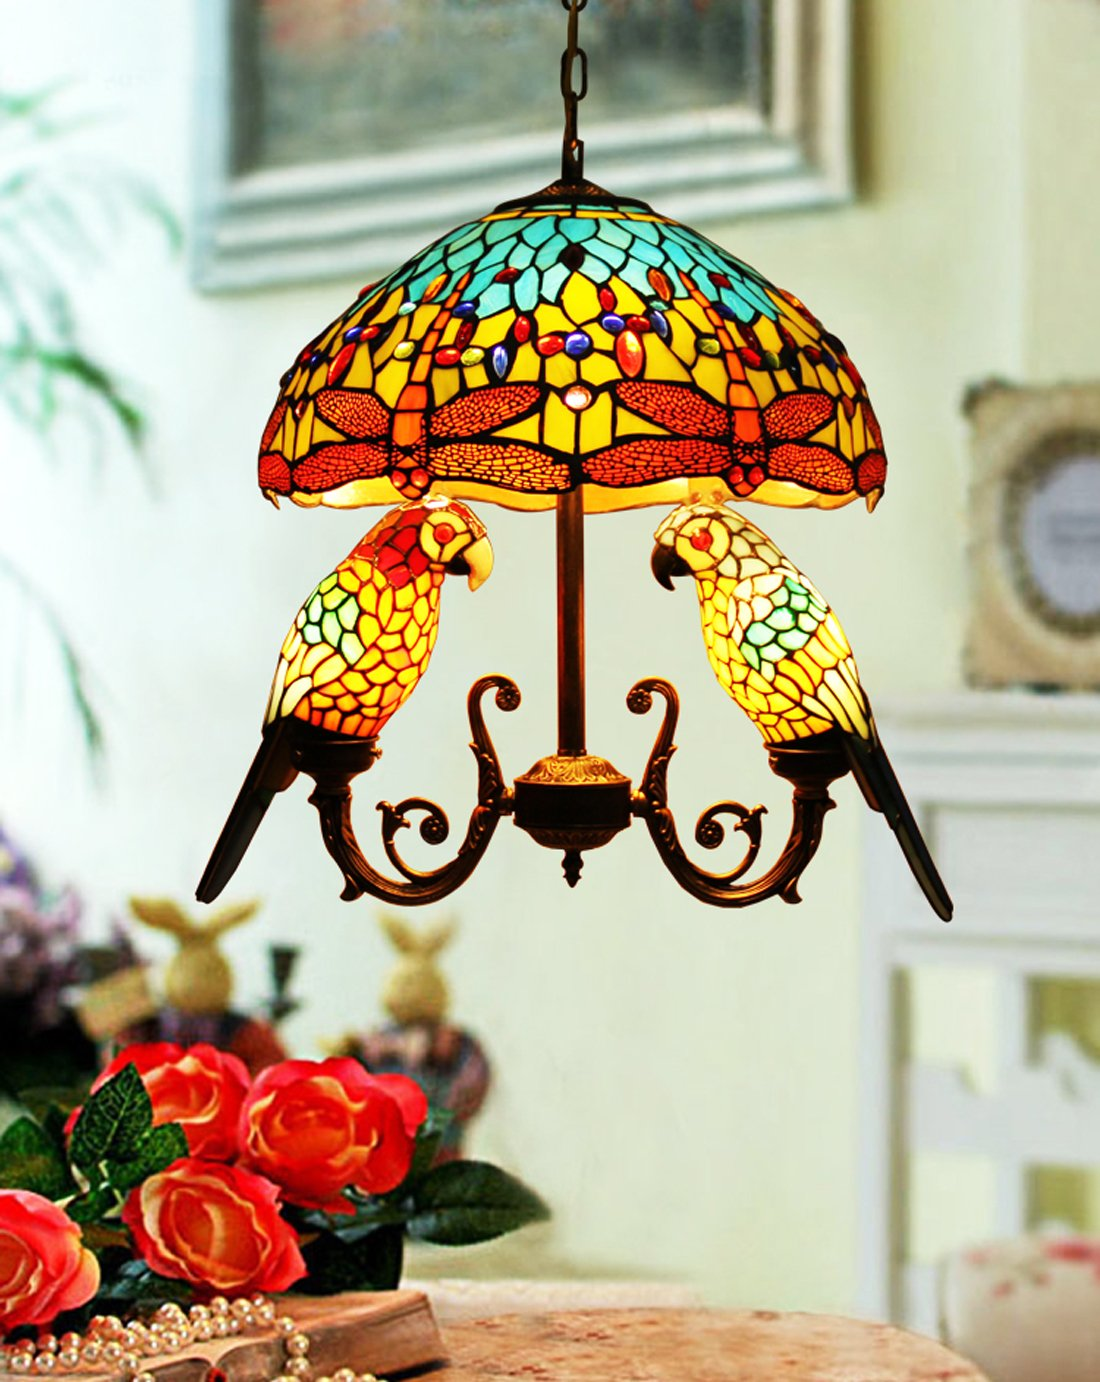 style lights bowl mini downward shade antique plans regarding lamps hanging glass inch stained lamp stain